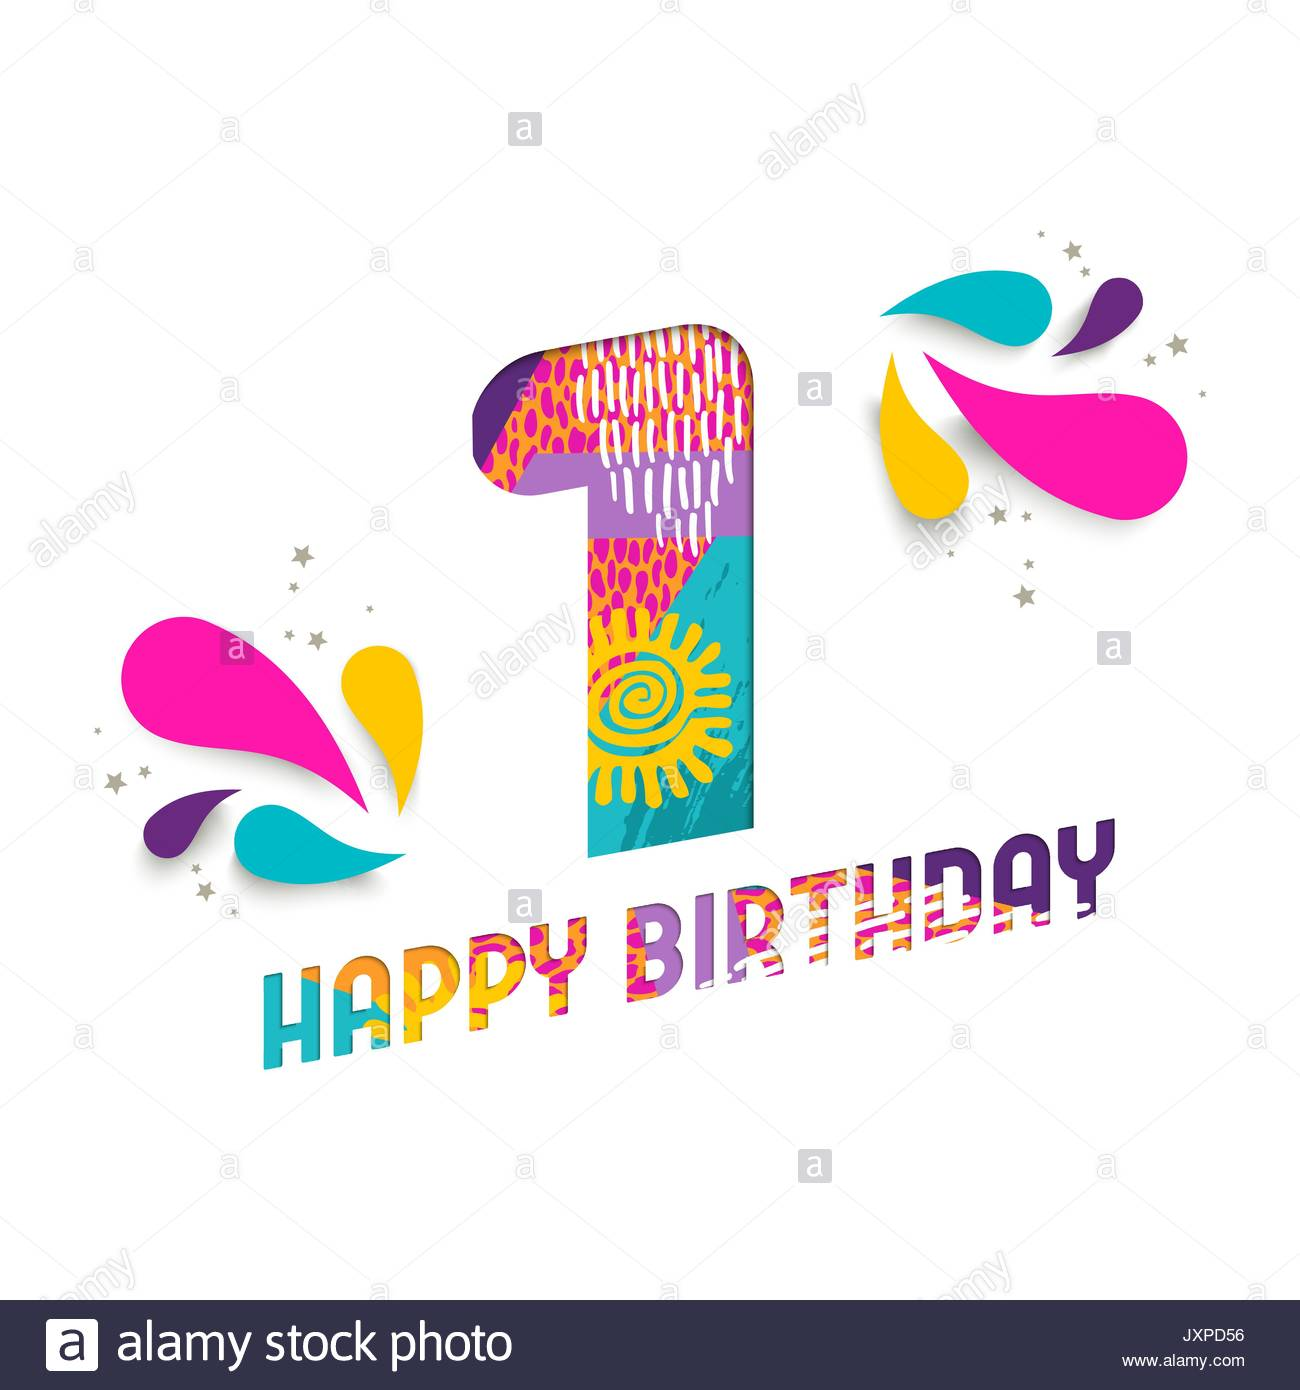 1 year birthday poster ; happy-birthday-one-1-year-fun-paper-cut-number-and-text-label-design-JXPD56